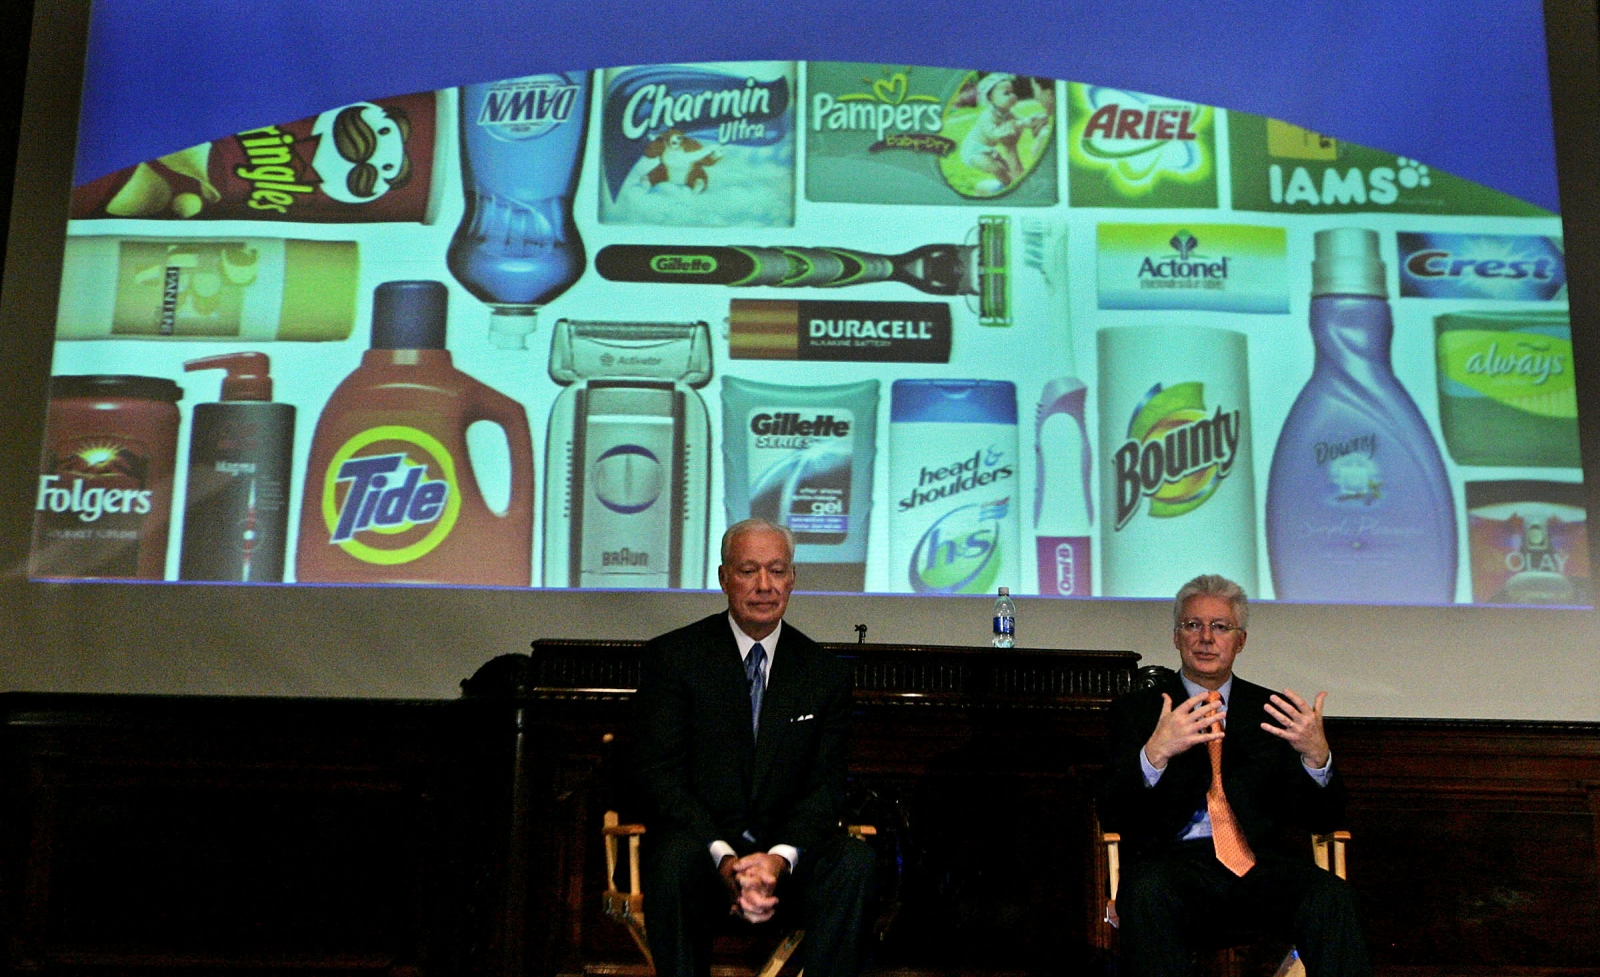 P&G announced a plan to sell off non-core 80 to 100 product lines that account for about 10% of its total revenue